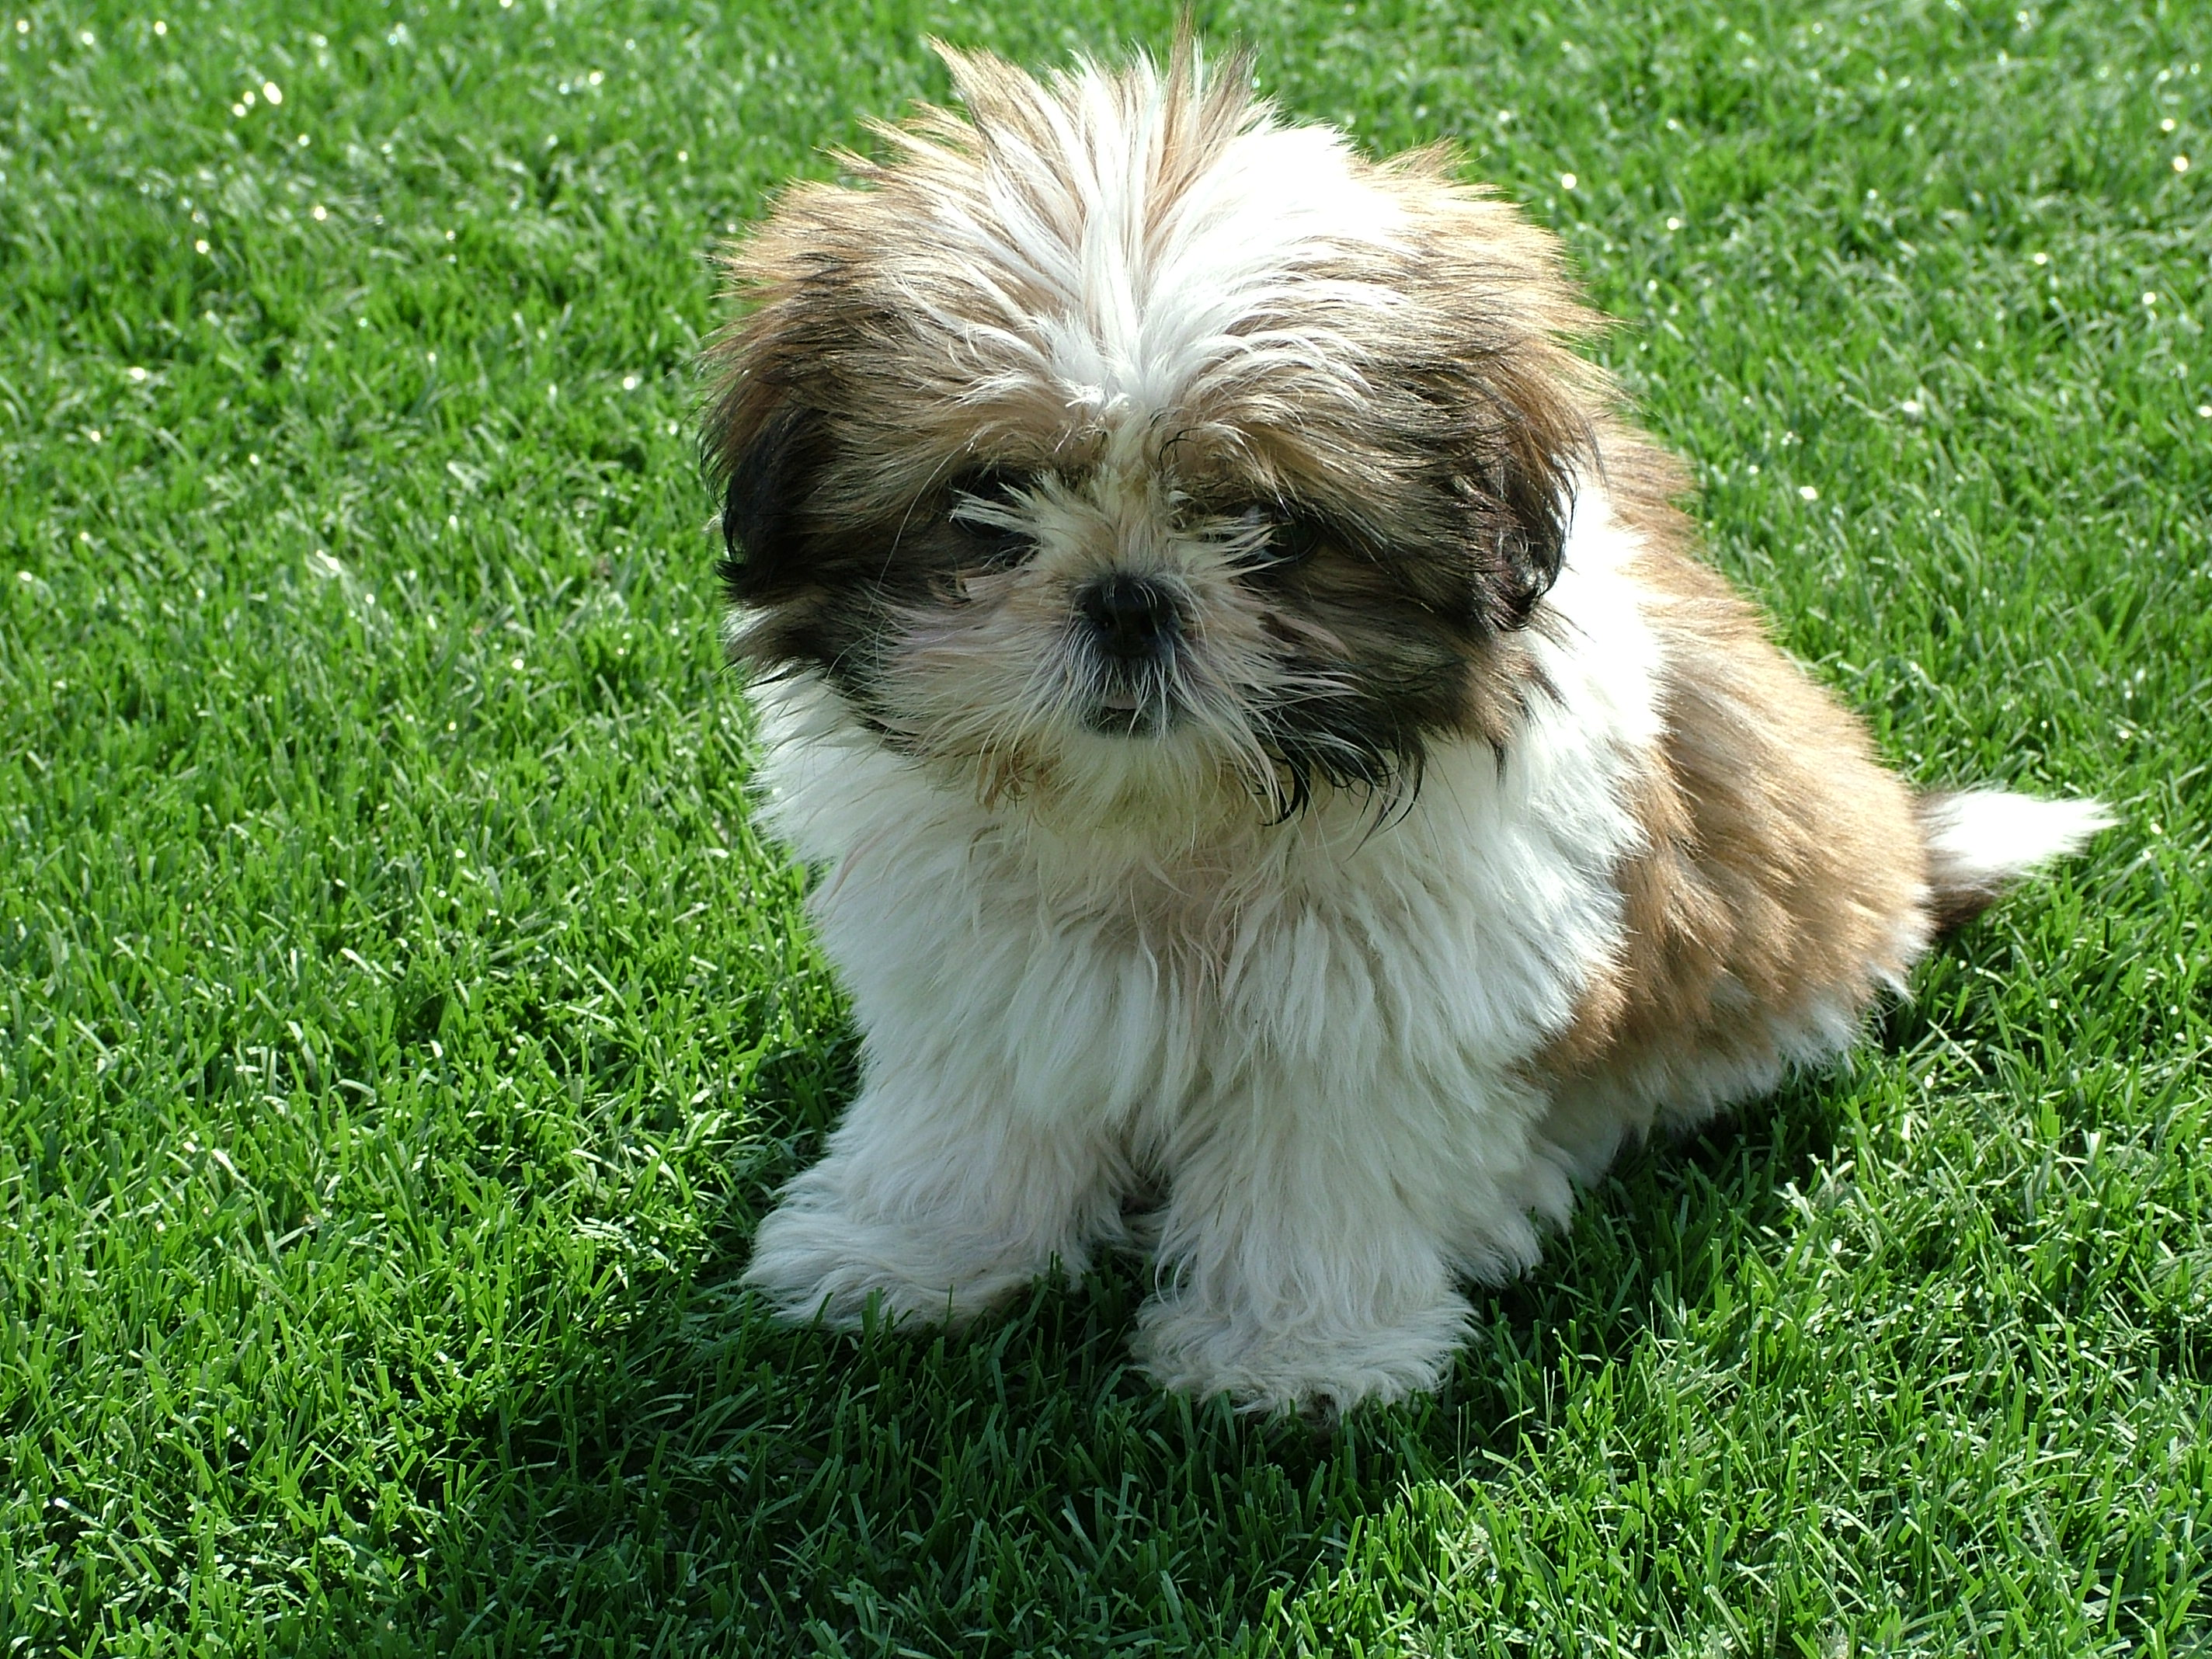 Where did Shih Tzu originate?